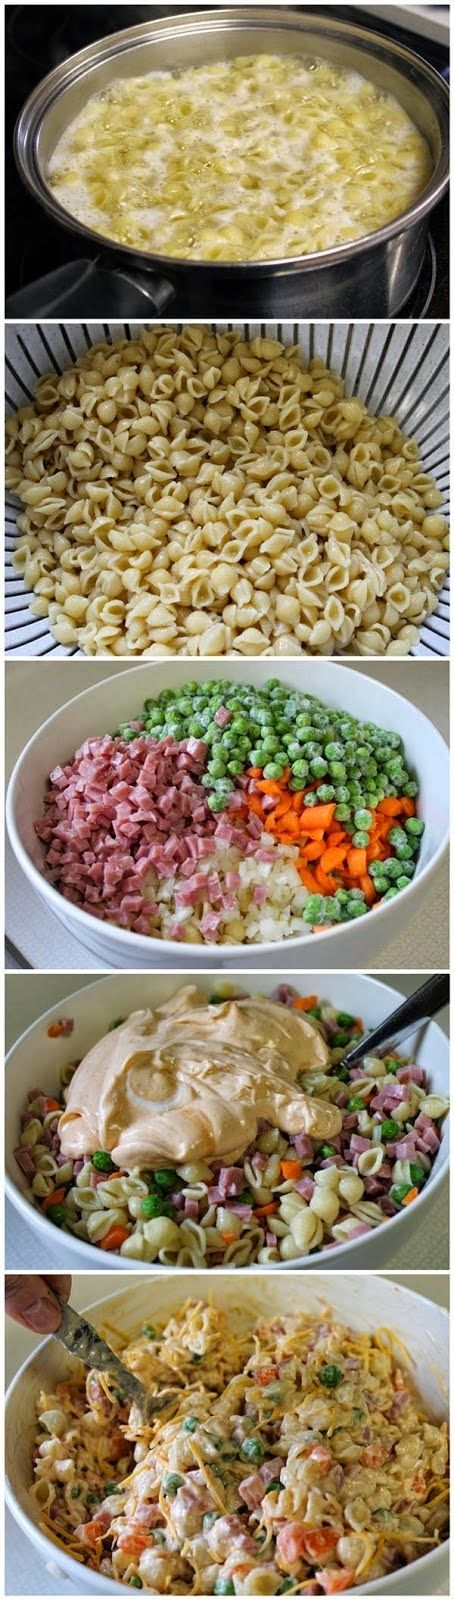 Summer Pasta Salad by abbeykoph